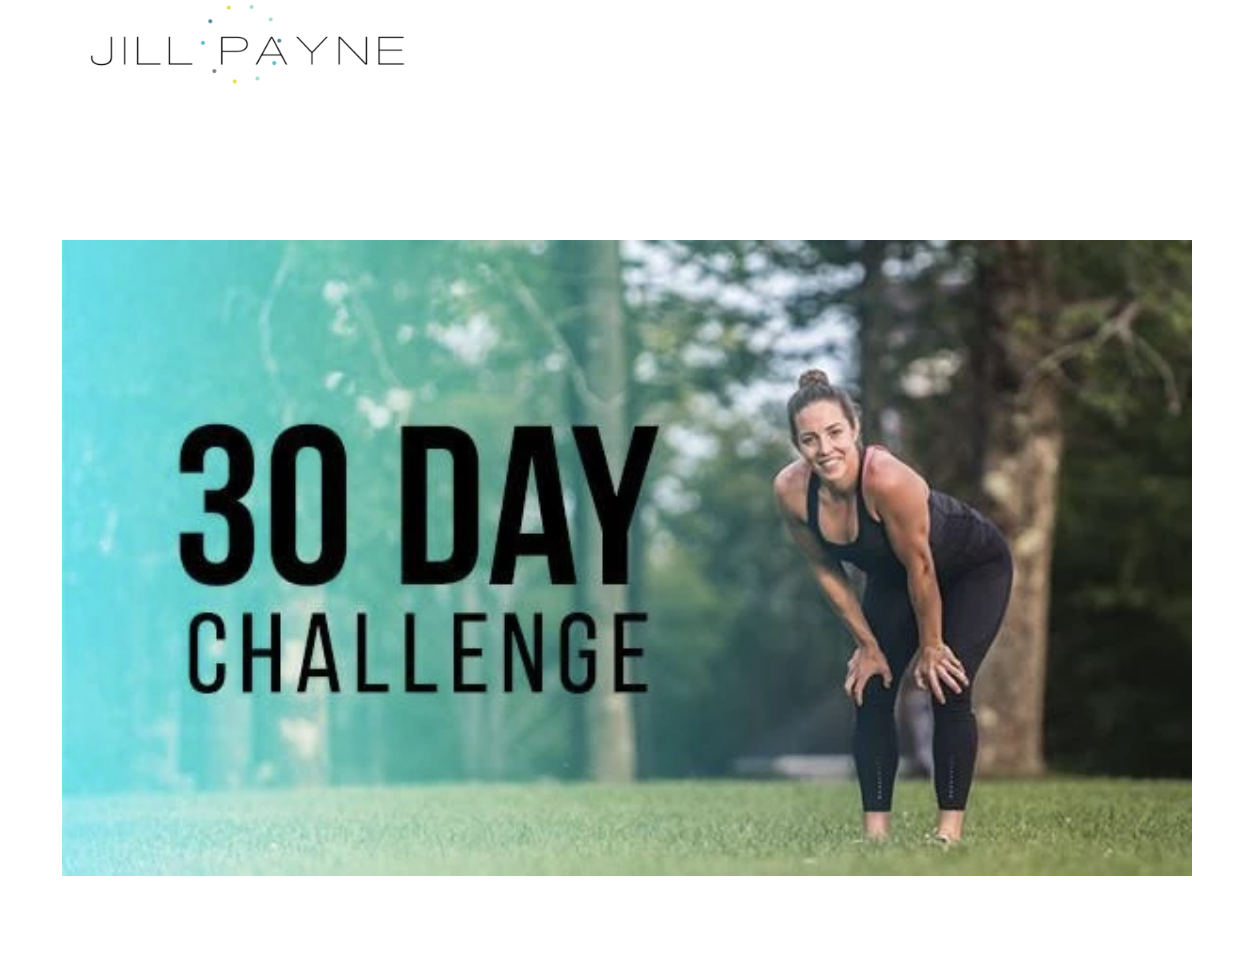 Jill Payne 30 Day Challenge - Audio Producer